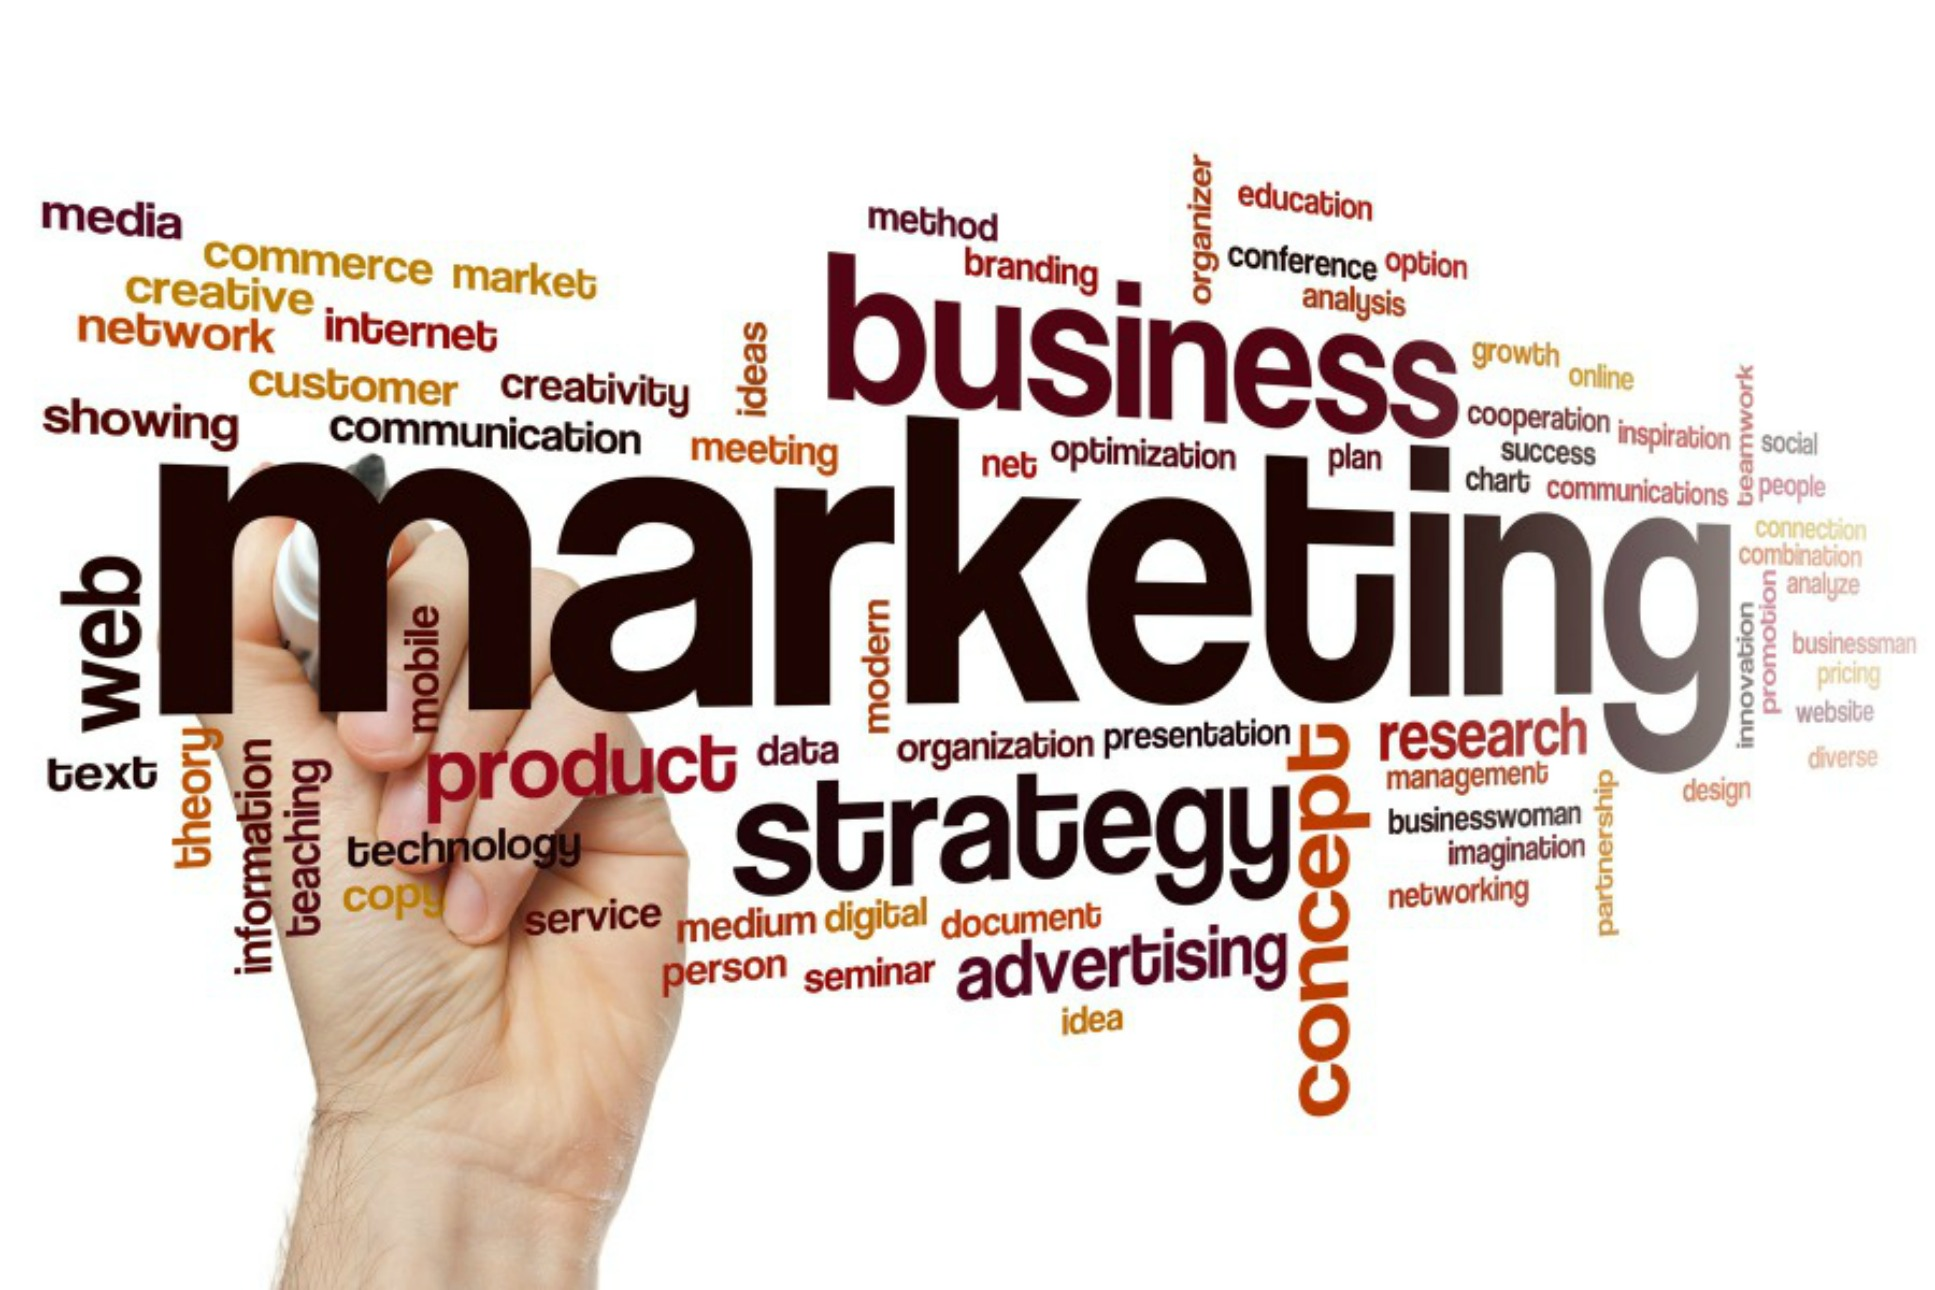 test papers in contemporary marketing business Business arena practice questions in this section, you will find an array of questions in various formats, designed to test your knowledge on marketing management.